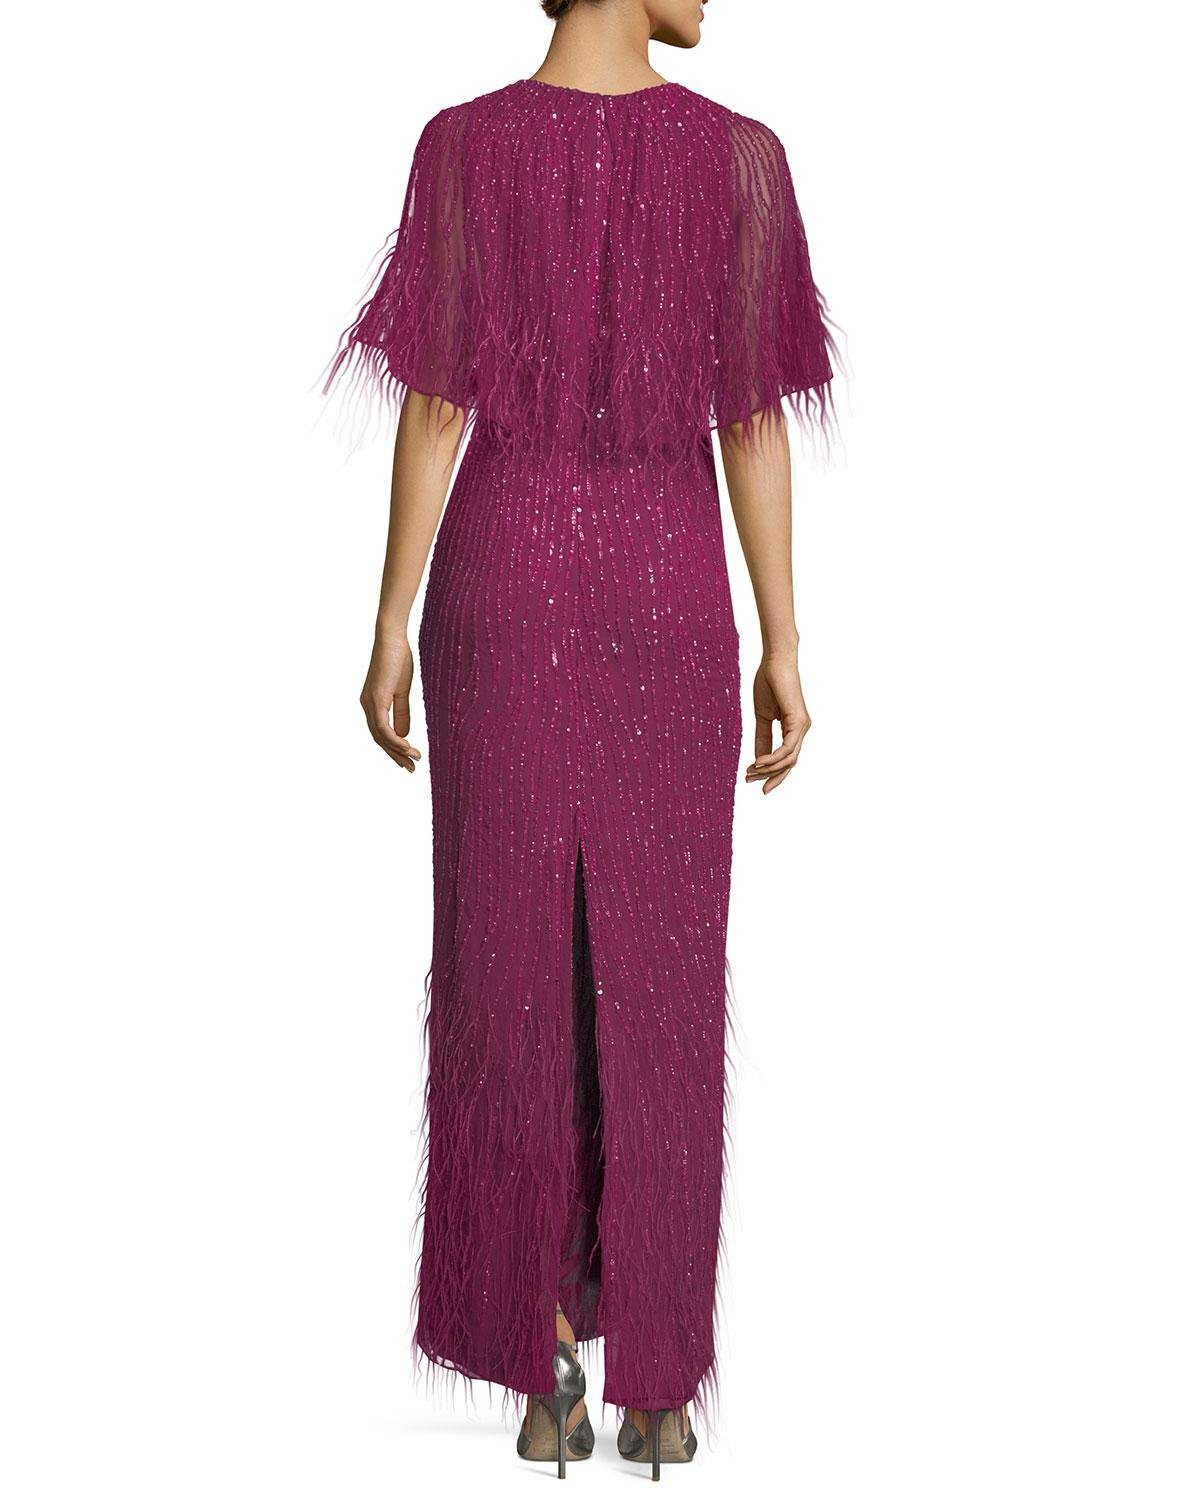 Lyst - Parker Black Lorena Sequined Feathered Evening Gown in Purple